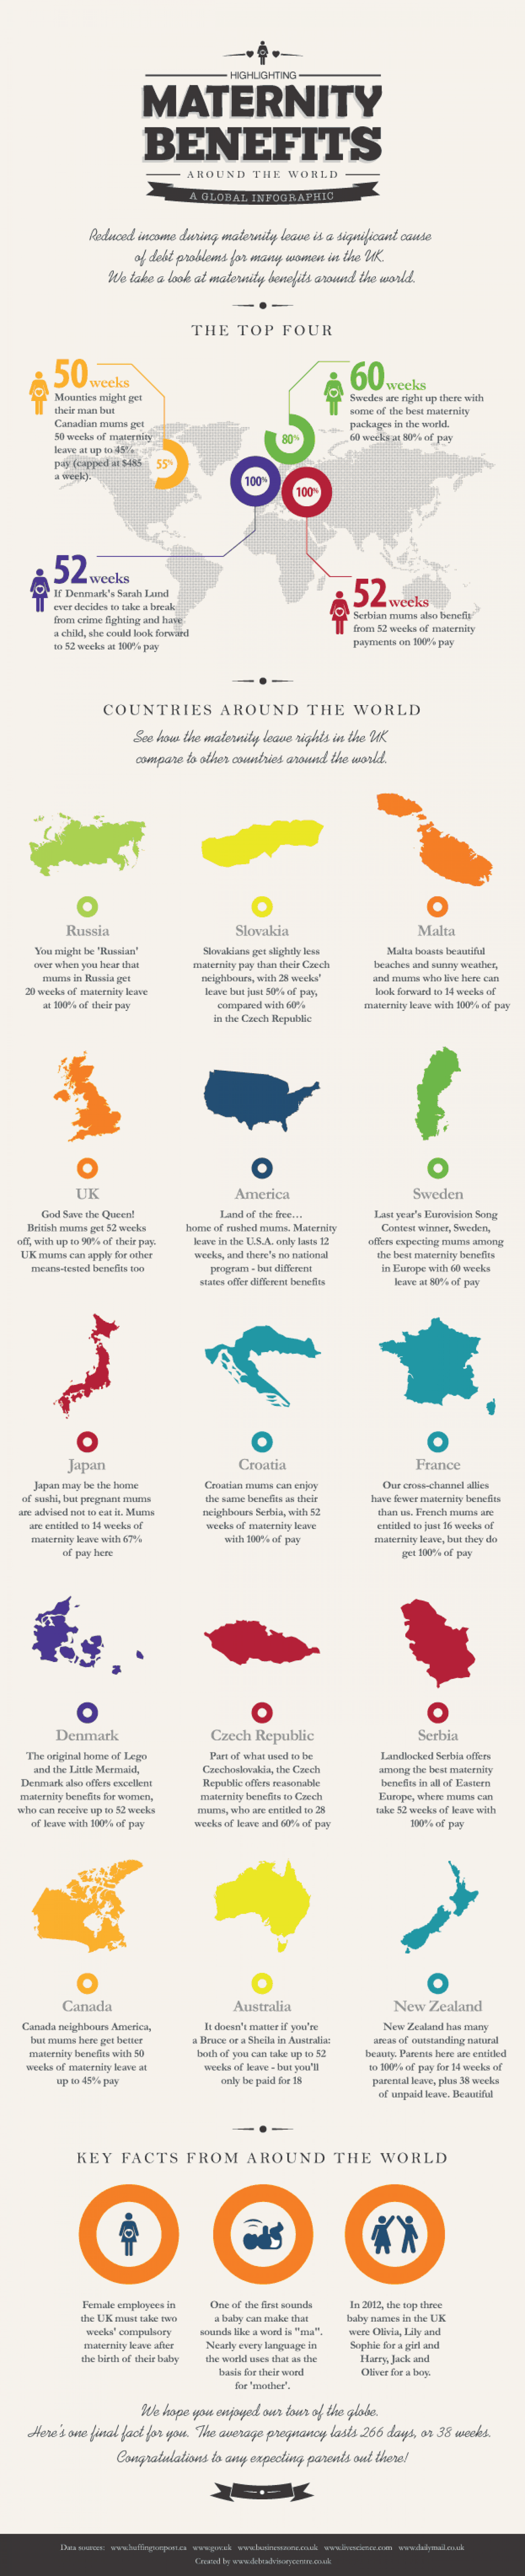 Maternity Benefits Around the World Infographic